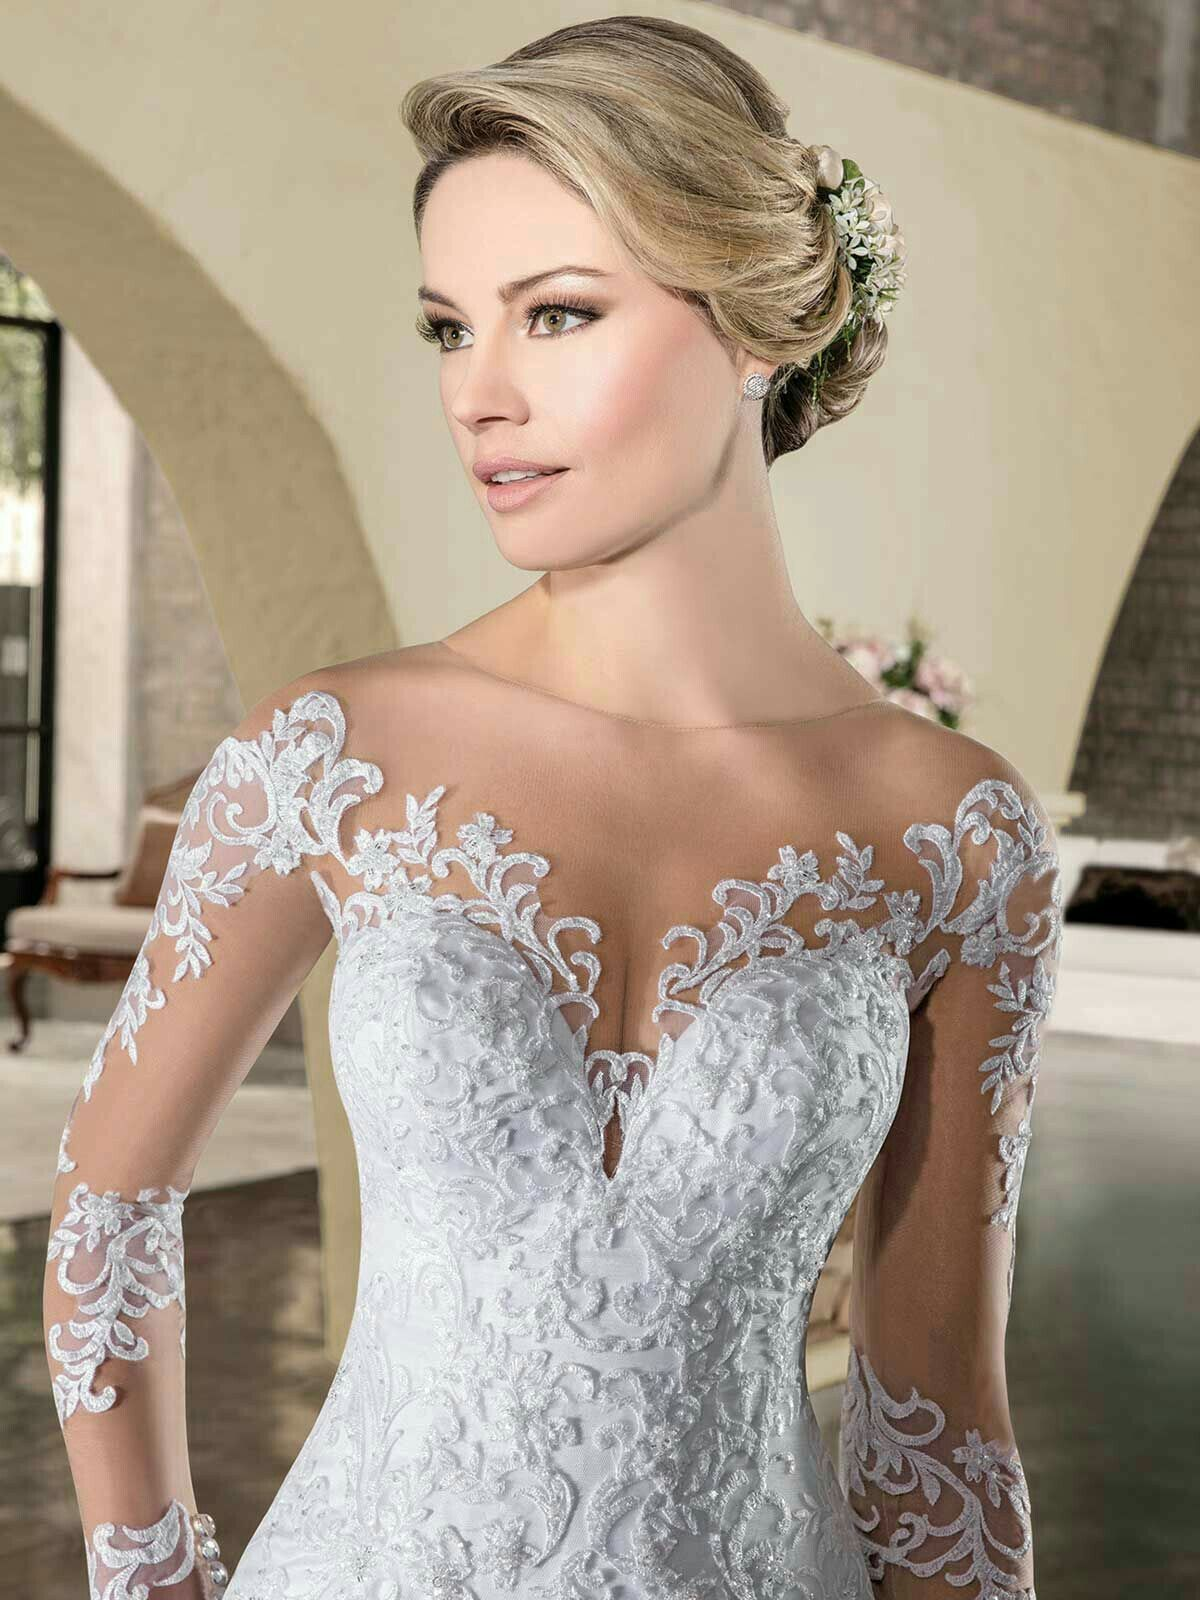 Blinged out wedding dress  Pin by Lucy Andaluciana on Wedding gown  Pinterest  Wedding